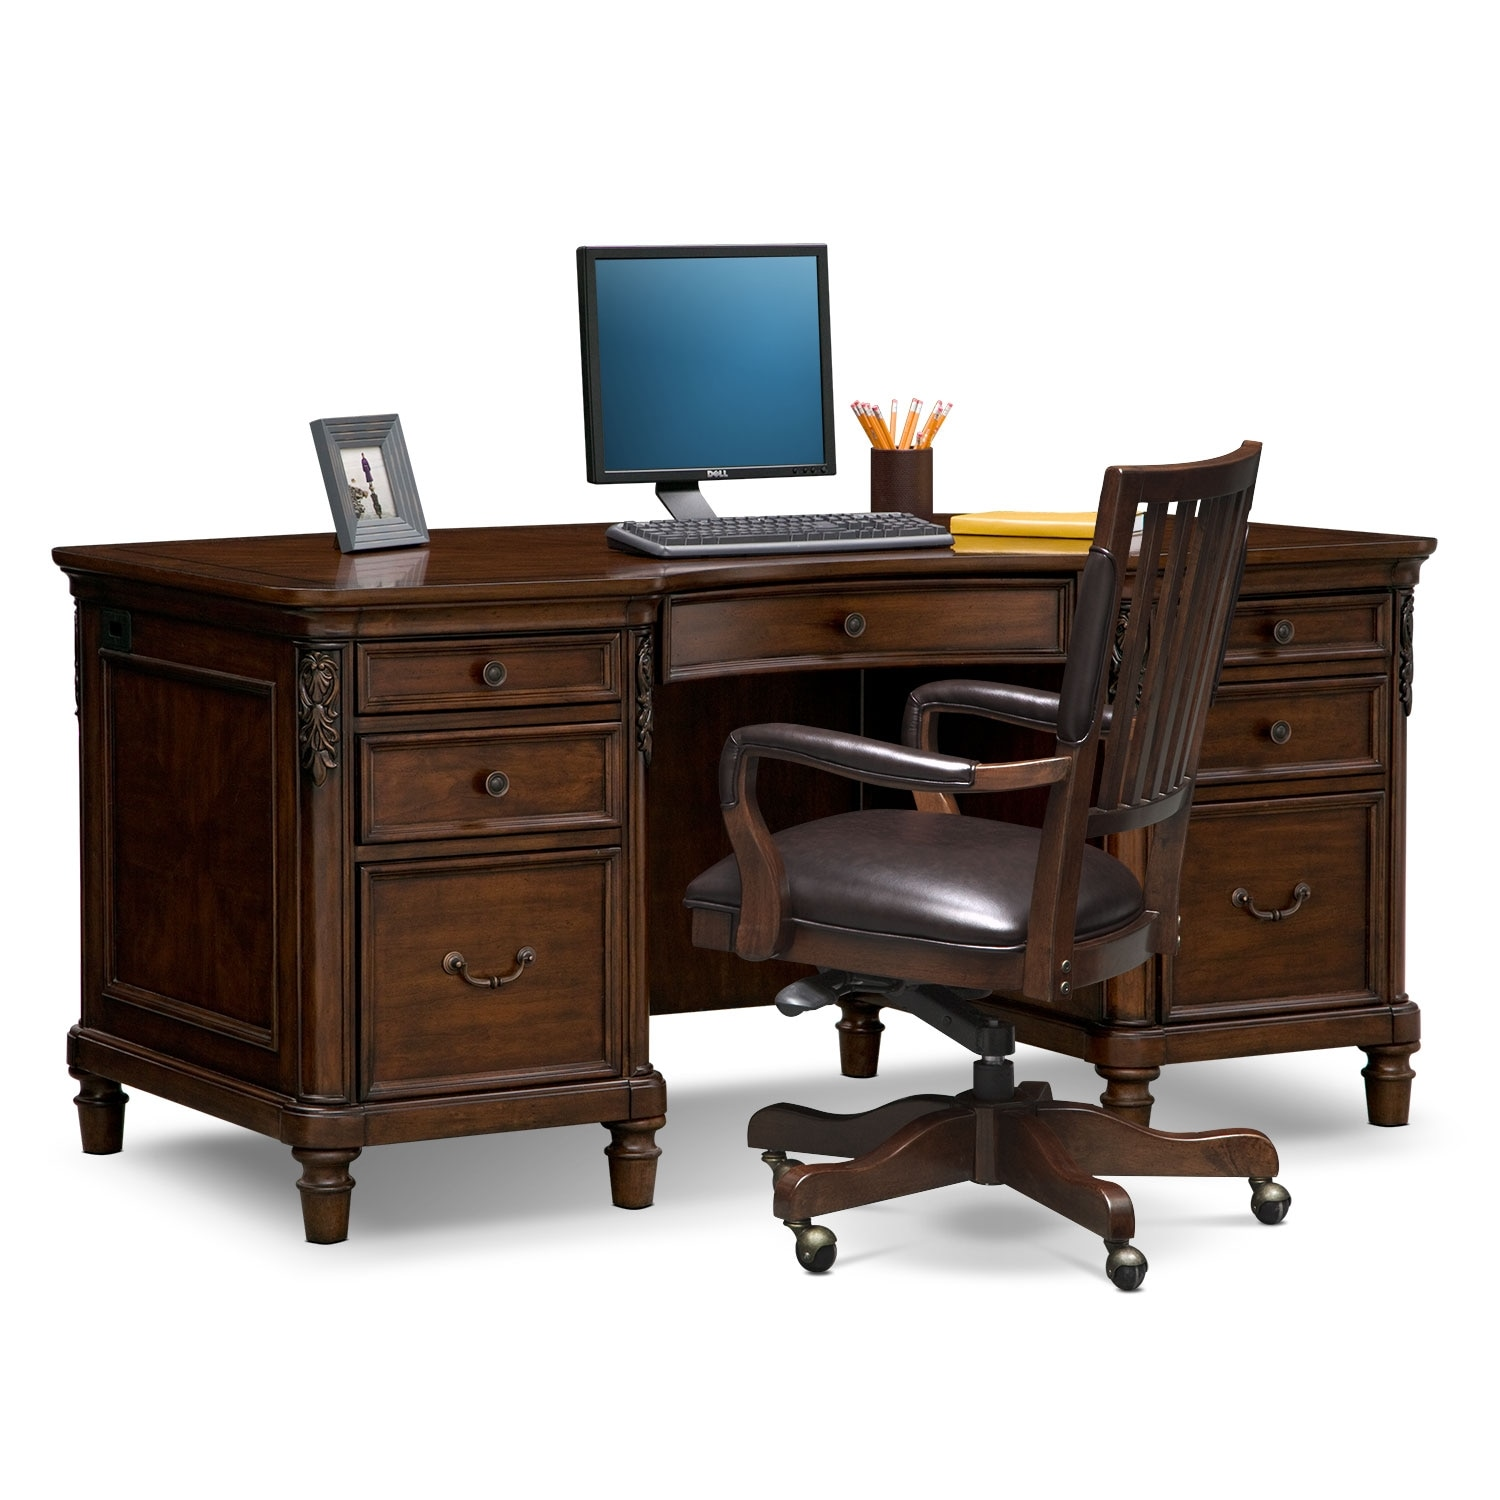 Desk And Chair Set Ashland Executive Desk And Chair Set Cherry